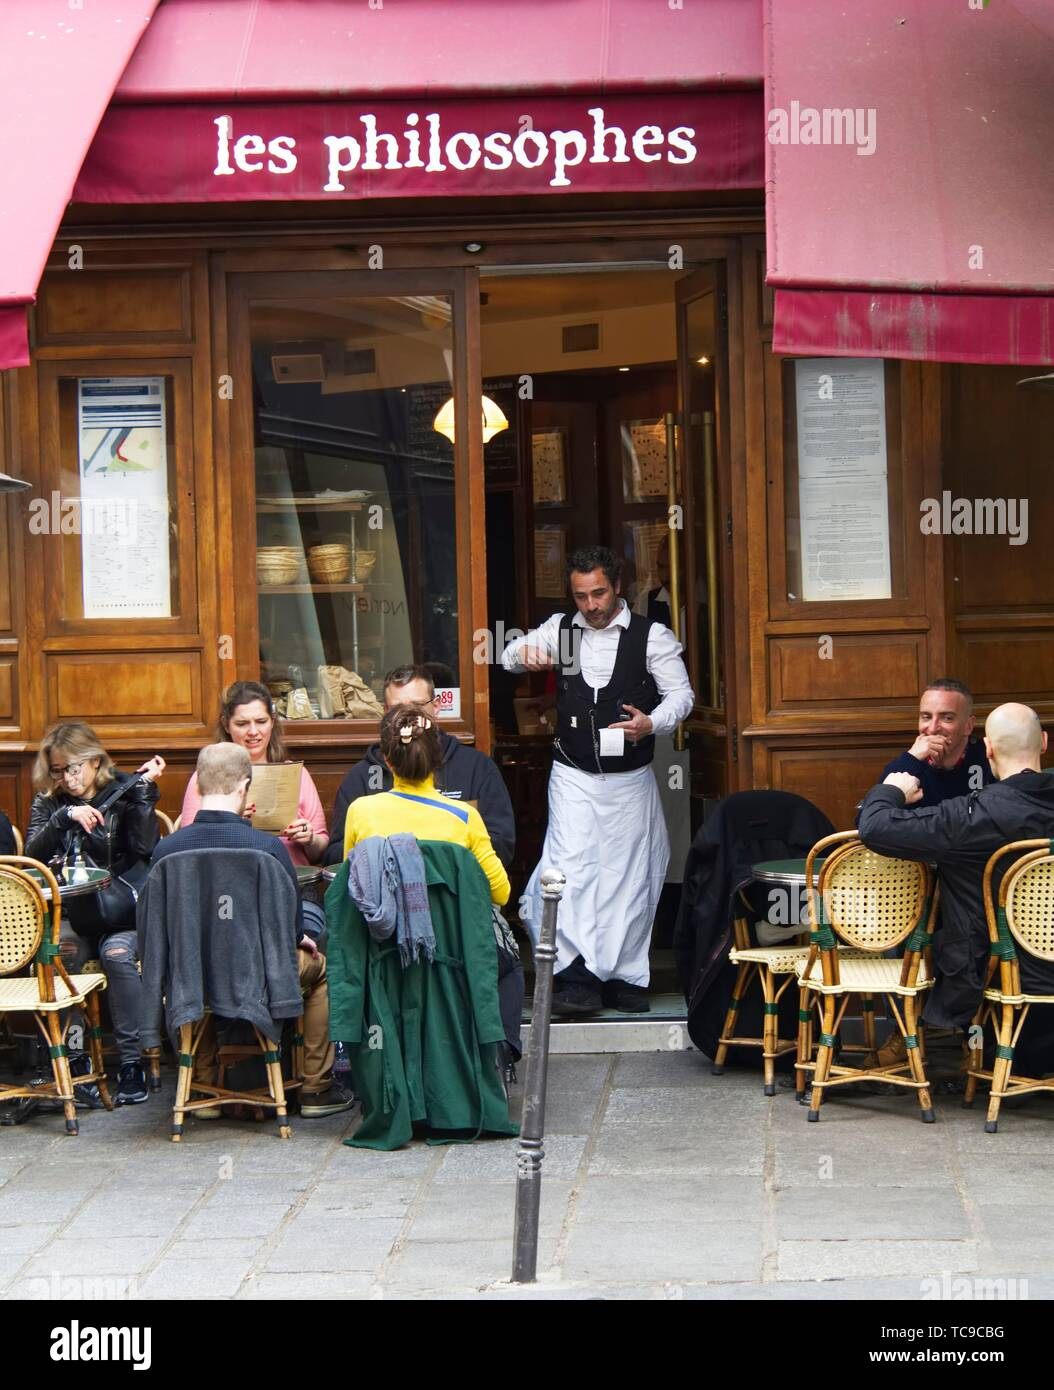 waiter in door of Cafe les Philosophes, Marais District, Paris, France. - Stock Image